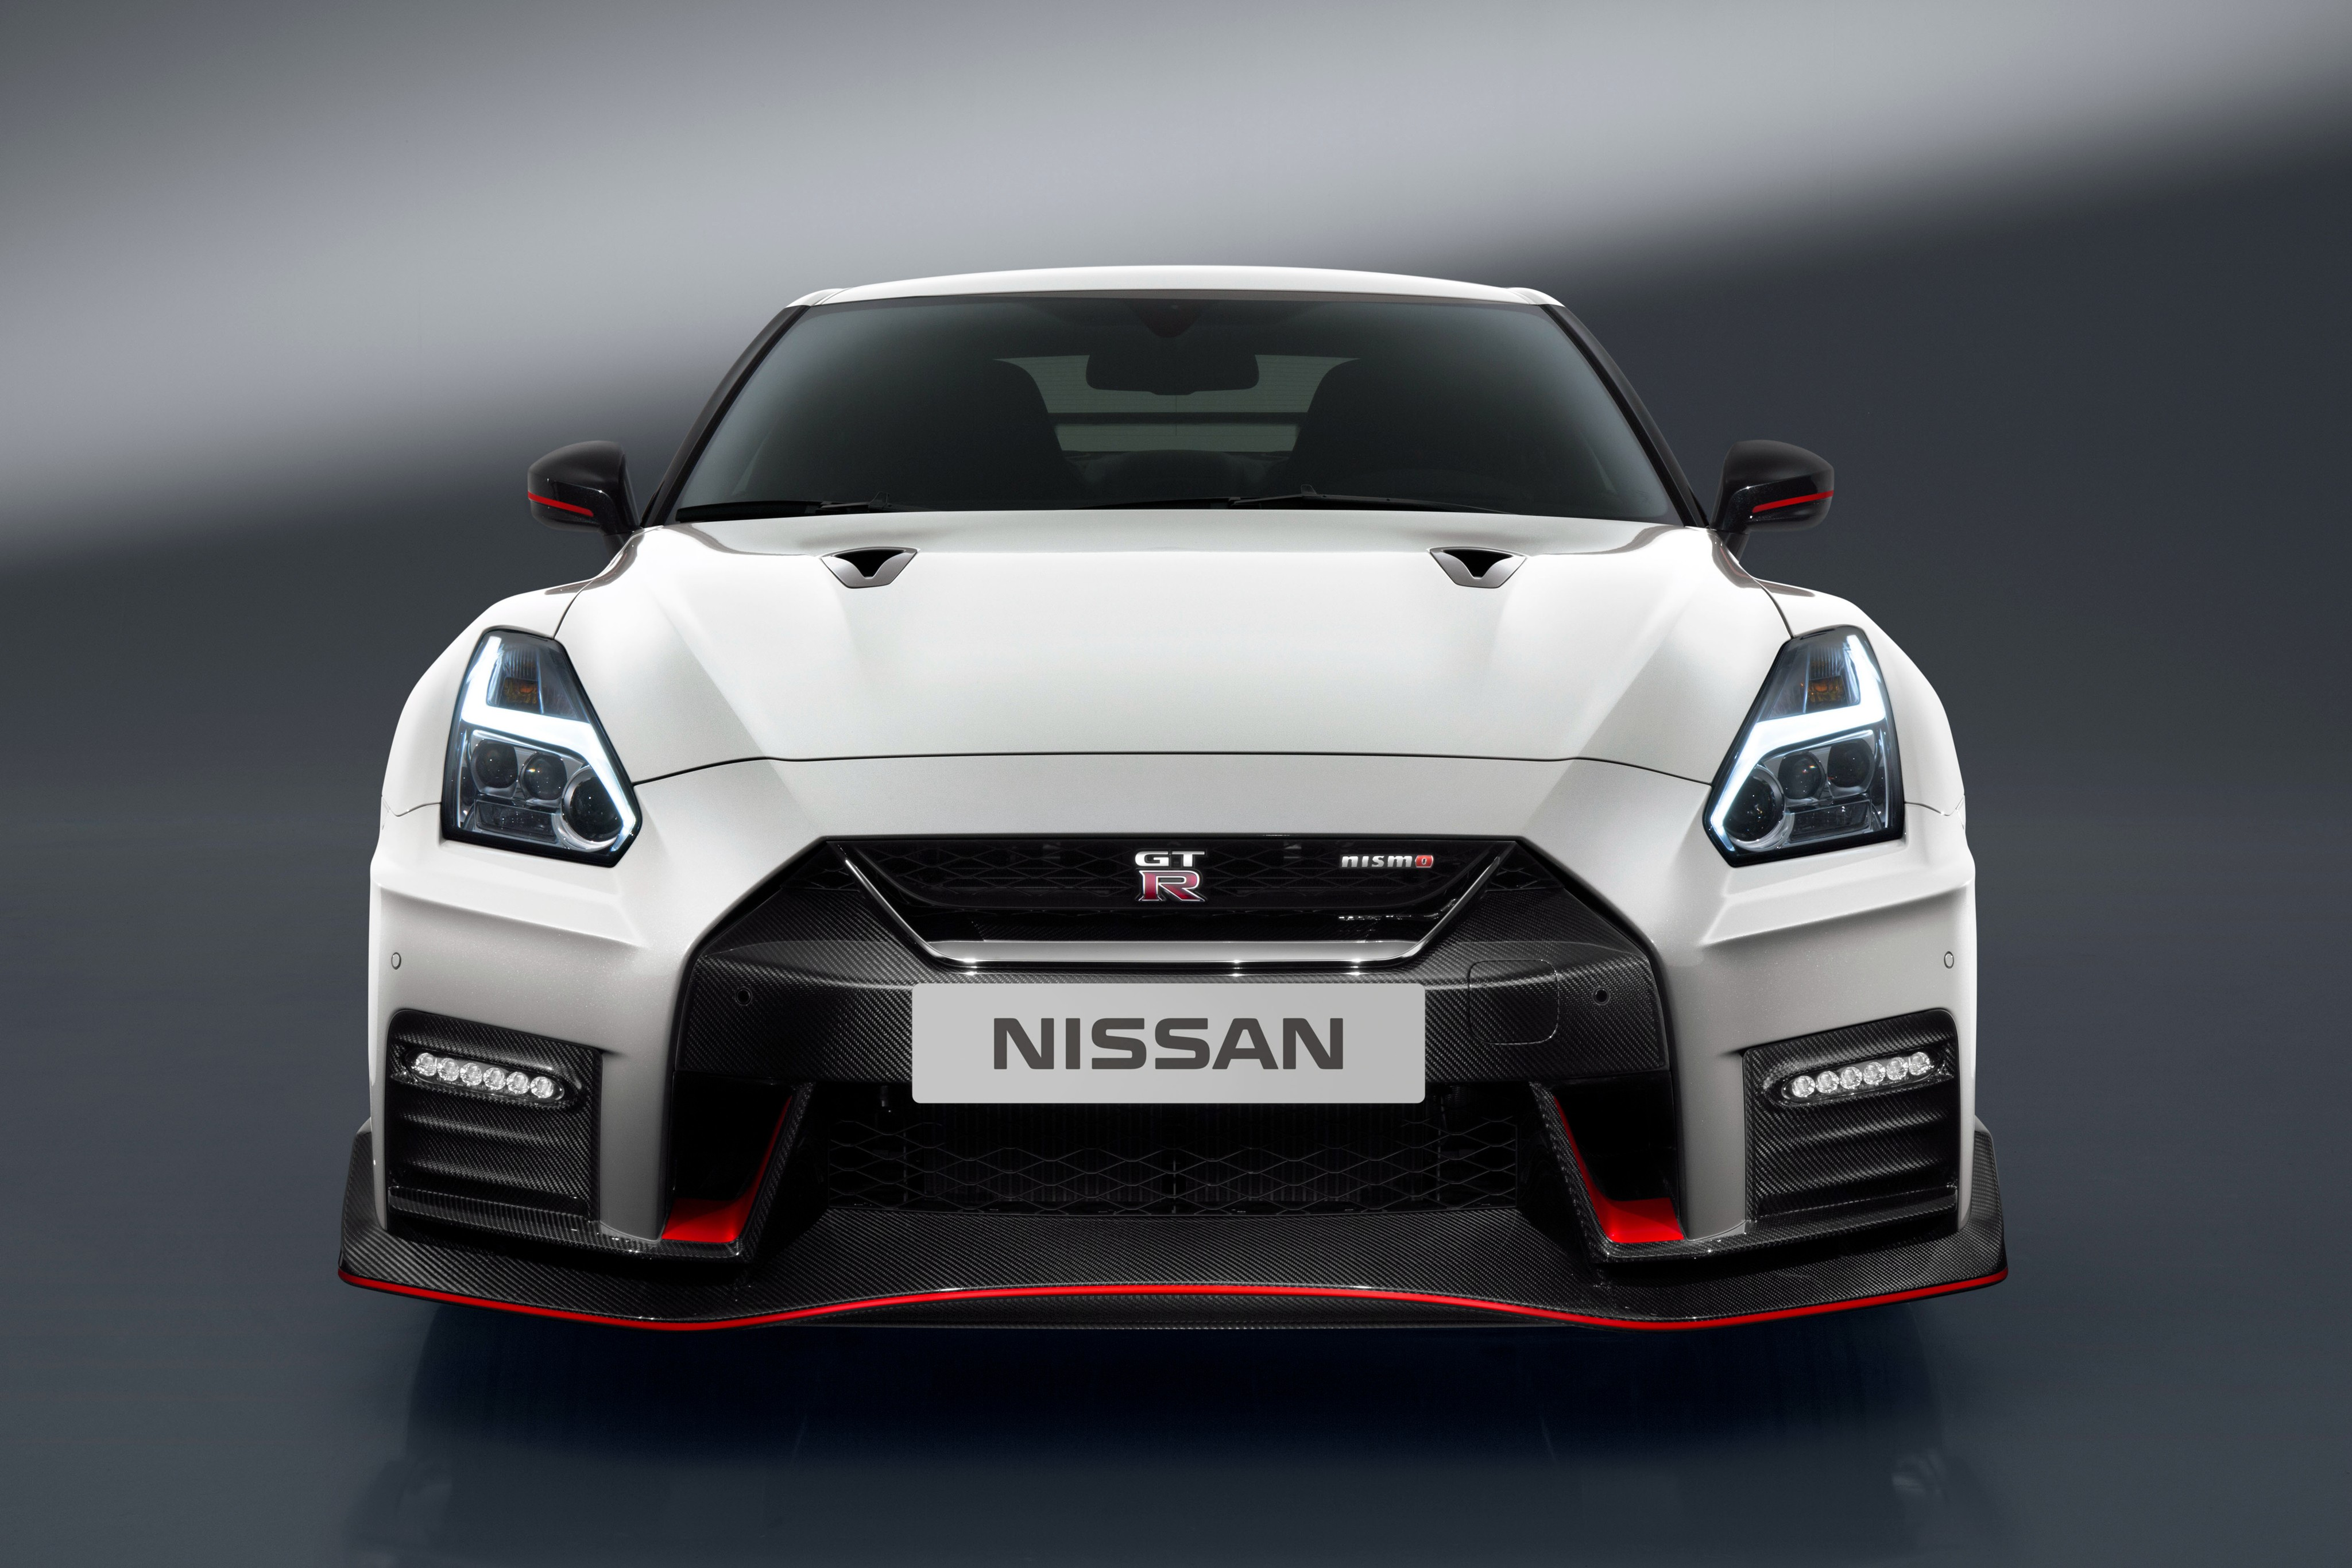 Luxury Car Iphone Wallpaper Wallpaper Nissan Gt R Nismo White Sport Car Cars